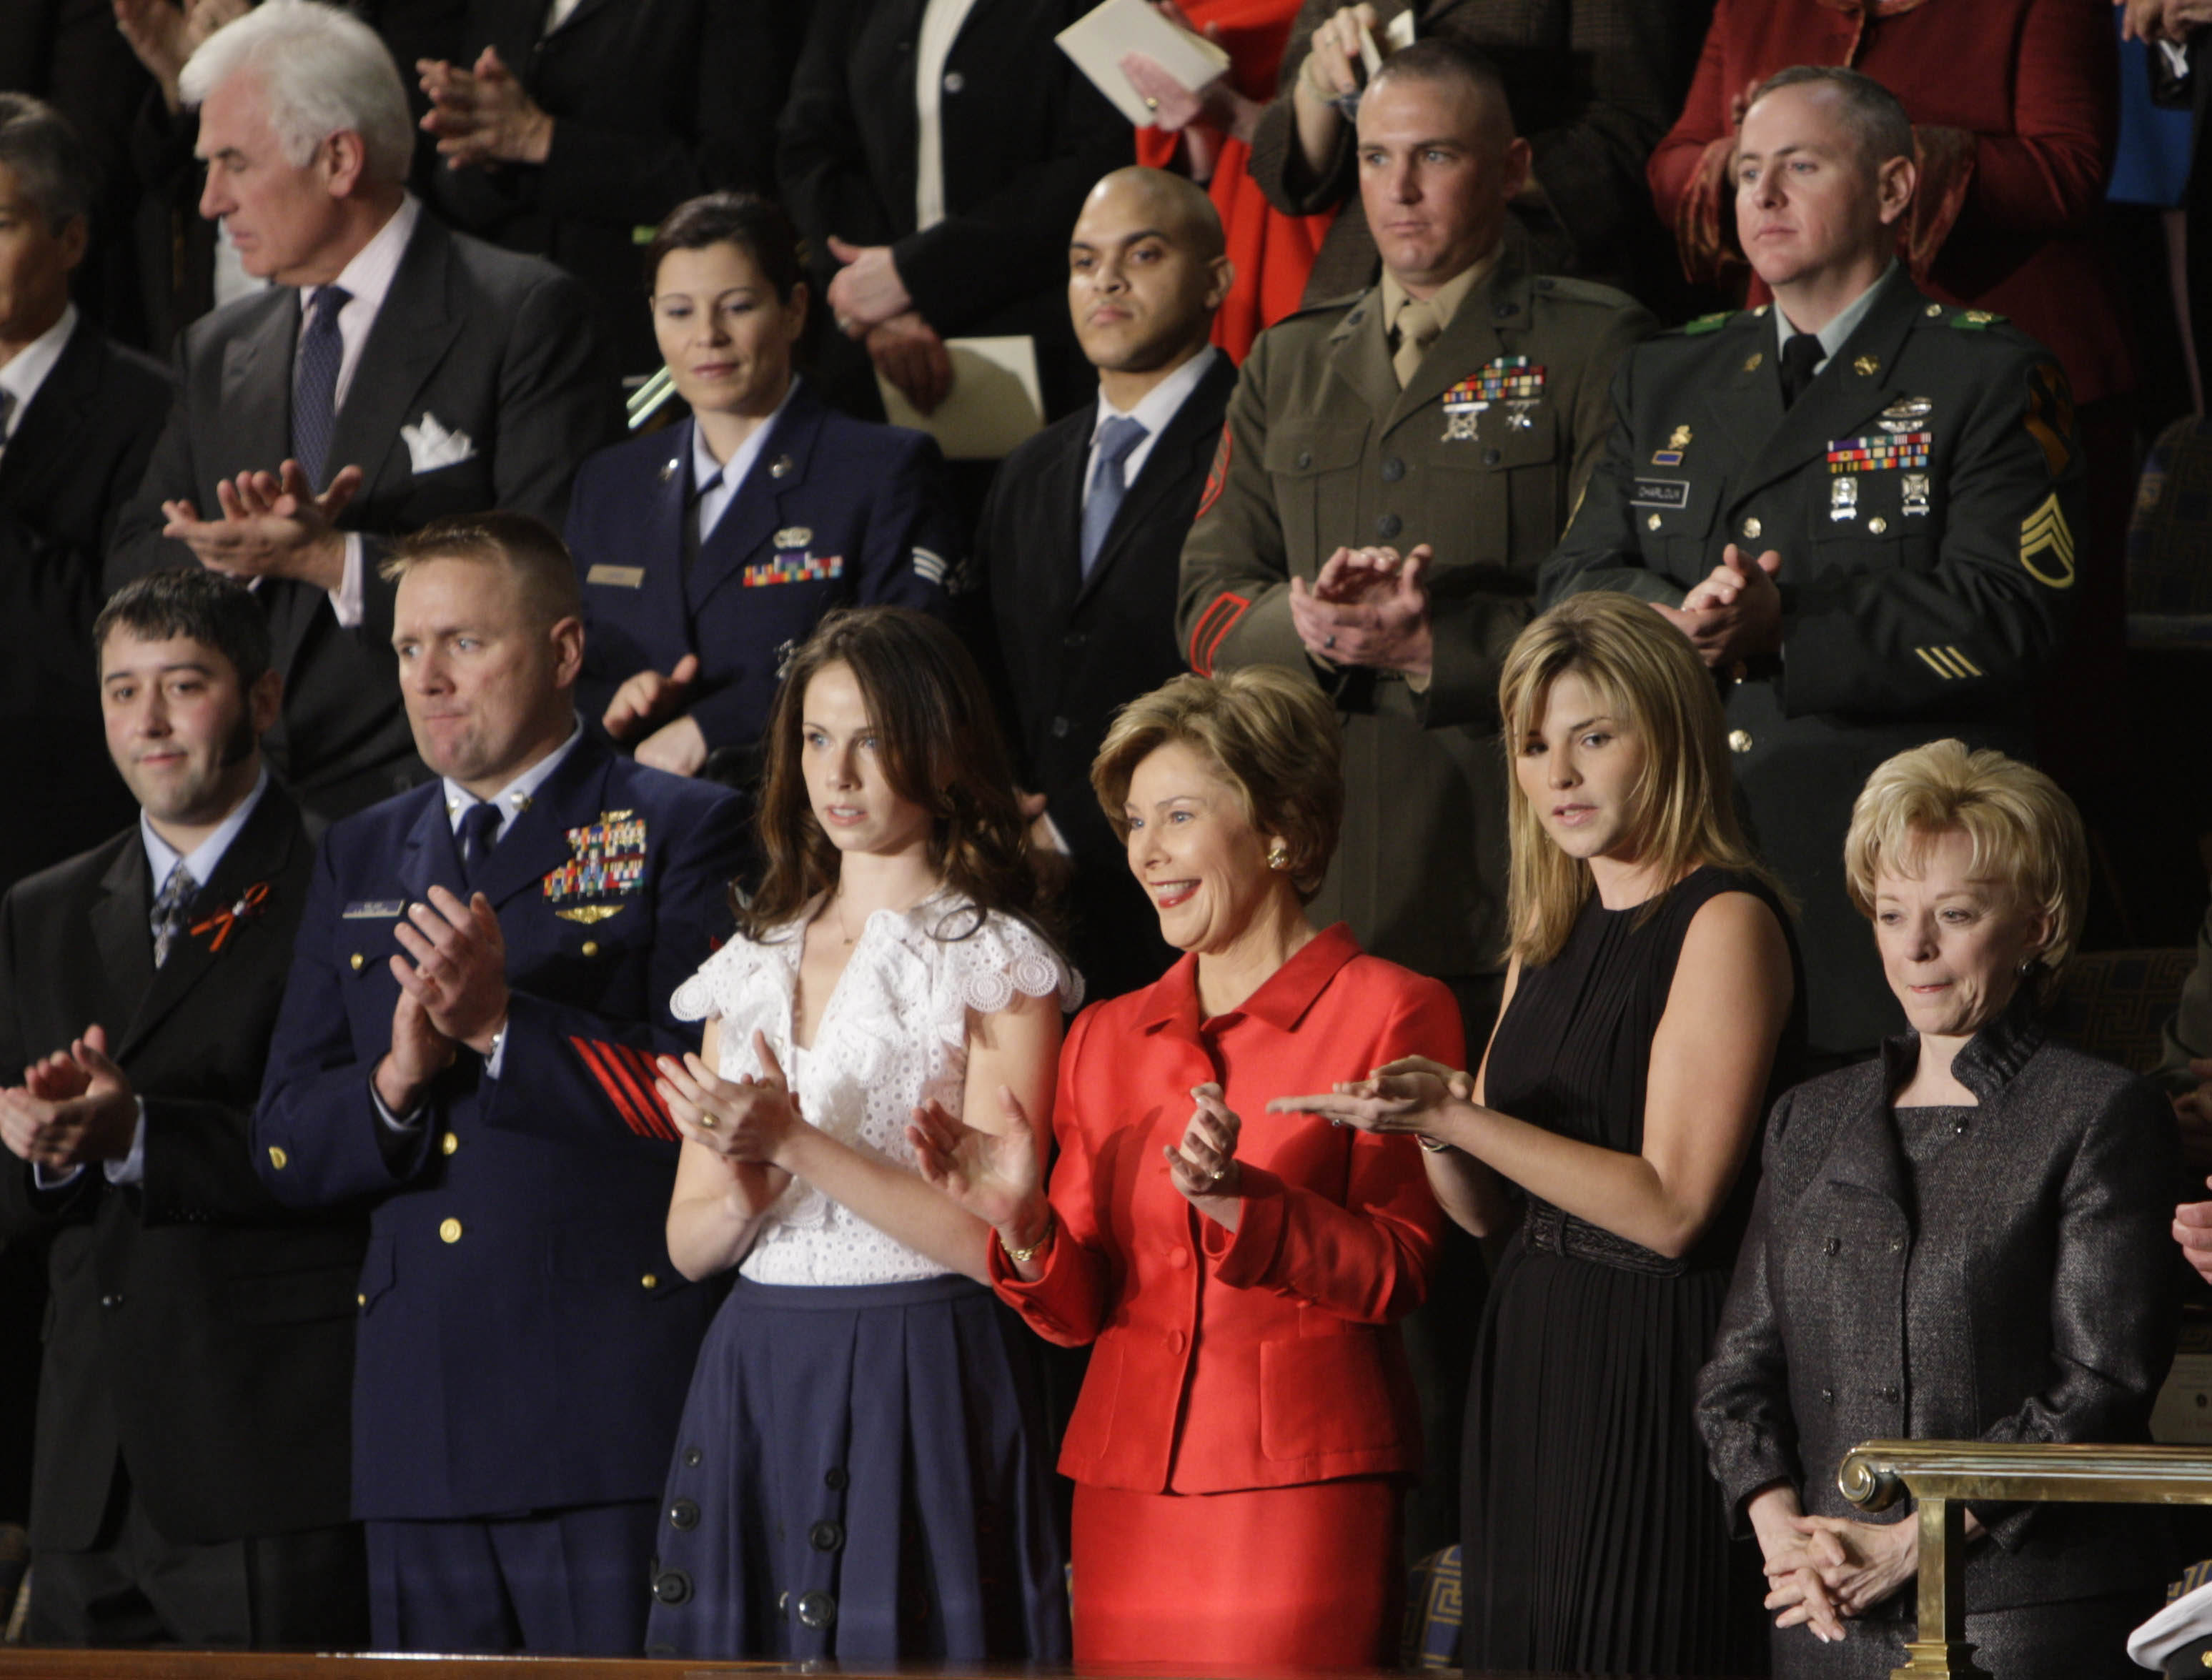 Irvin Mayfield (2nd row: 2nd from left) attends President Bush's State of the Union speech on Jan. 28, 2008. After losing his family in Hurricane Katrina, the jazz trumpeter was named cultural ambassador for the City of New Orleans by Congress.